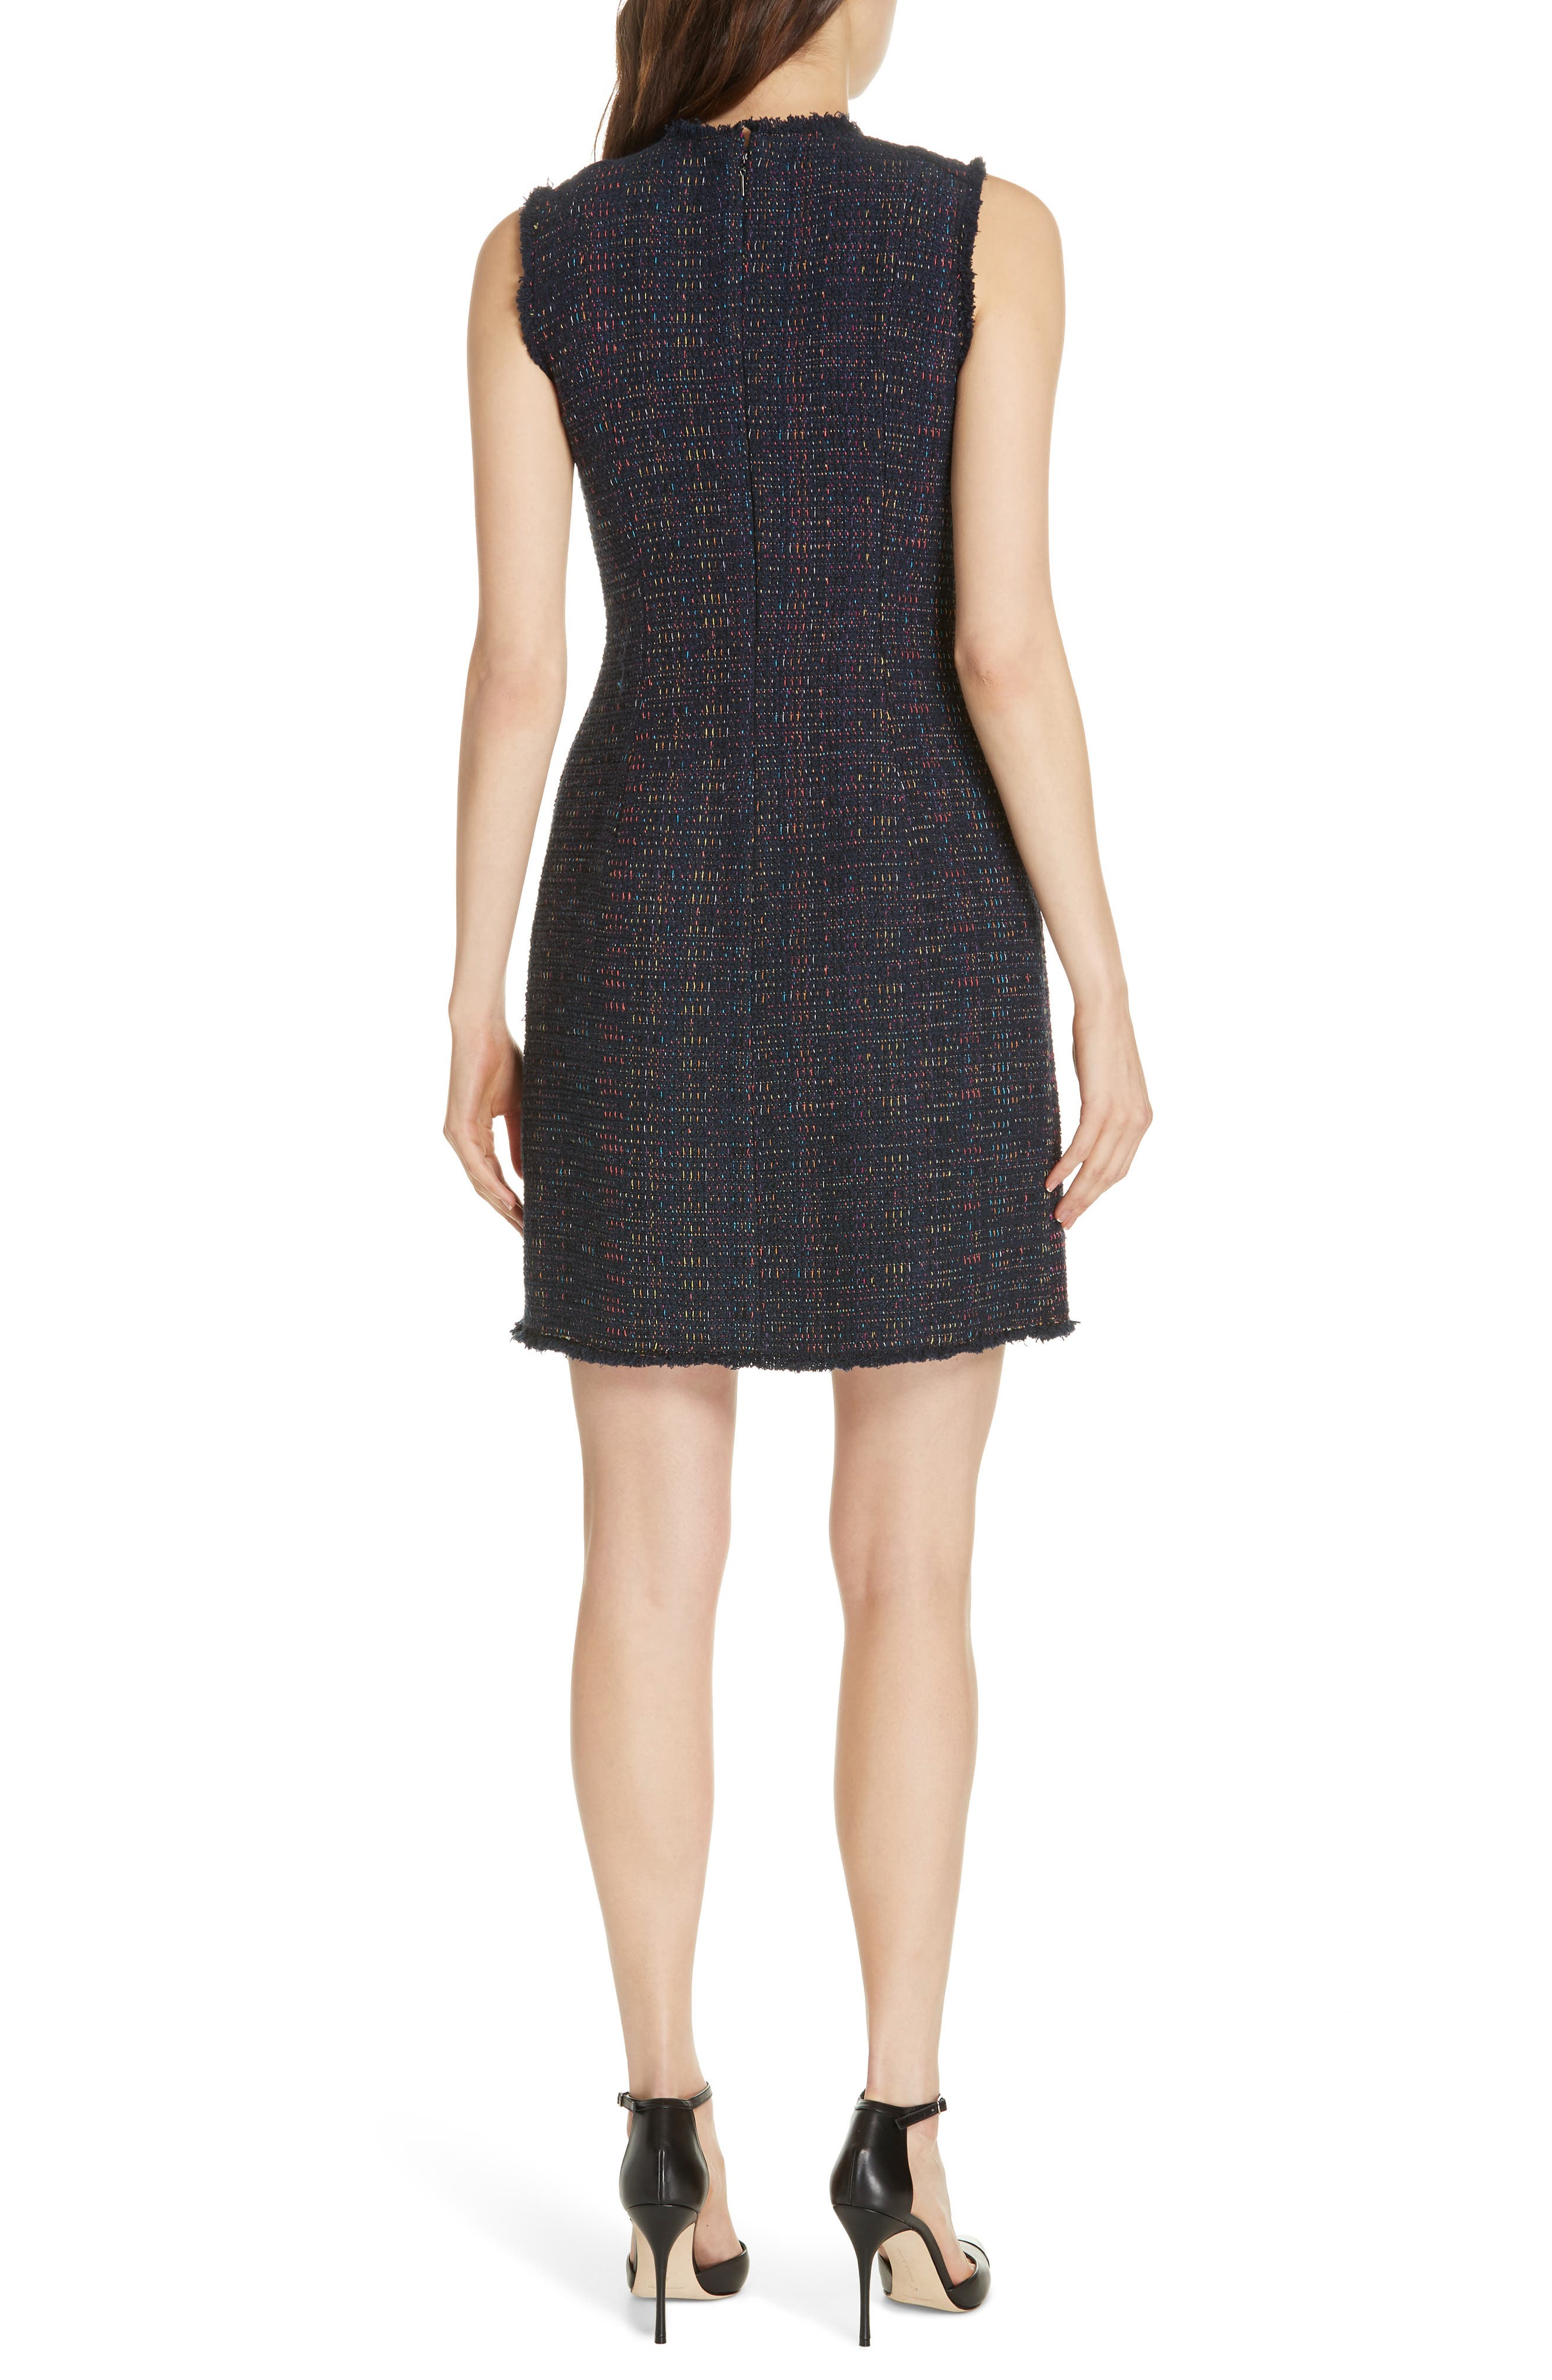 REBECCA TAYLOR, Rainbow Tweed Fit & Flare Dress, Alternate thumbnail 2, color, NAVY